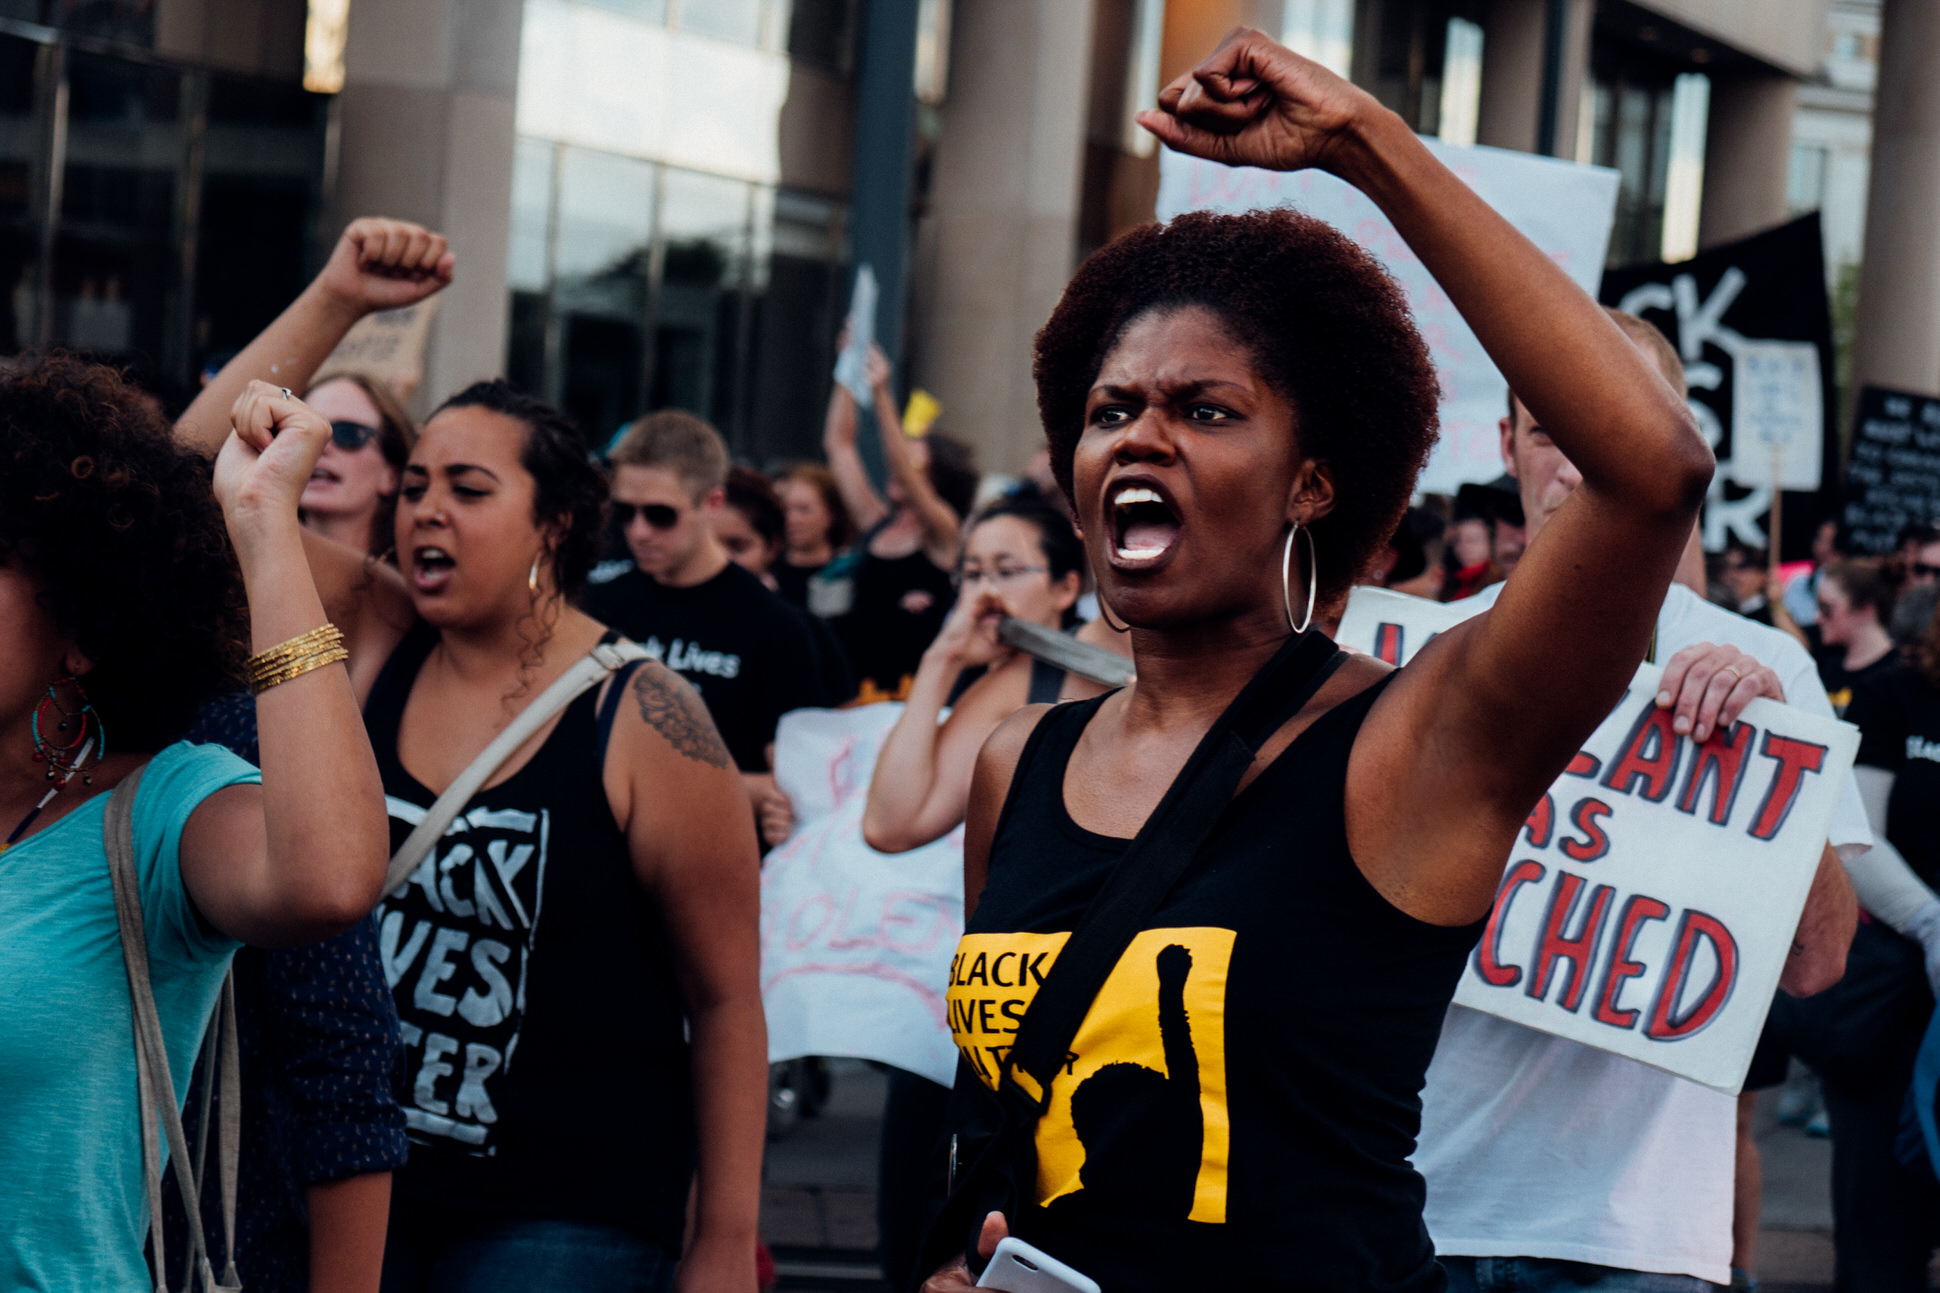 """Reverend Dawn Riley Duval, one of the leaders of BLM 5280 organization joins in chanting """"No justice no peace""""."""